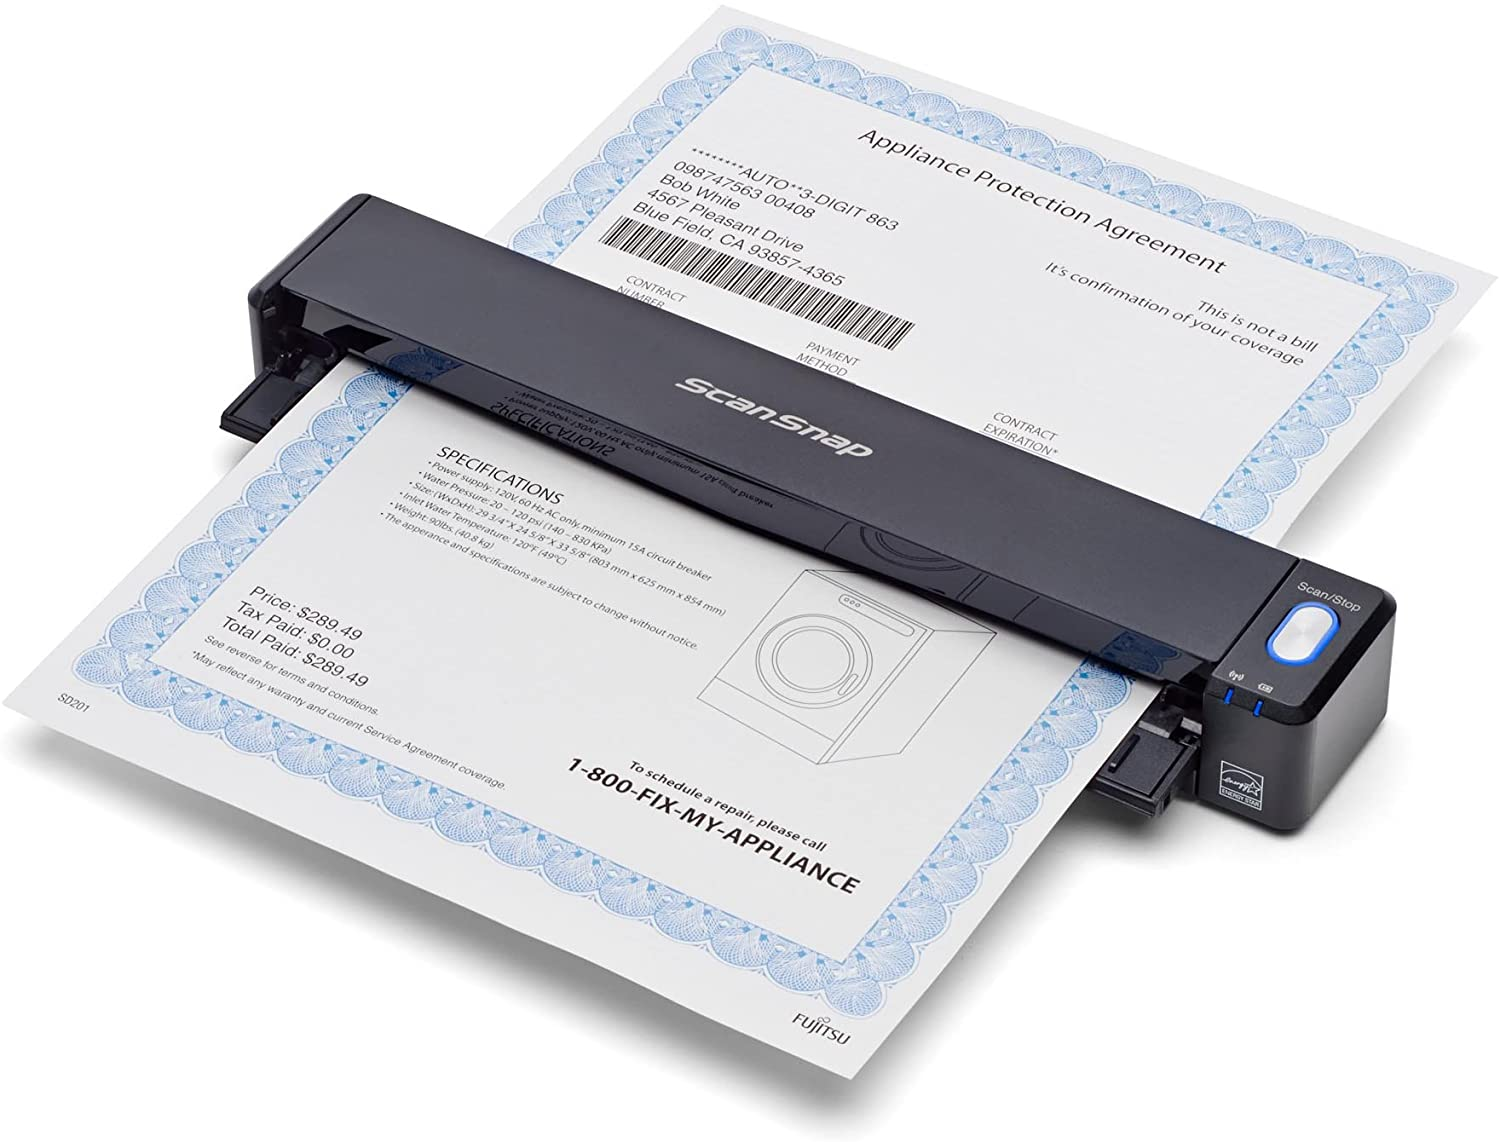 Black wireless mobile scanner from Fujitsu scanning one page of a document